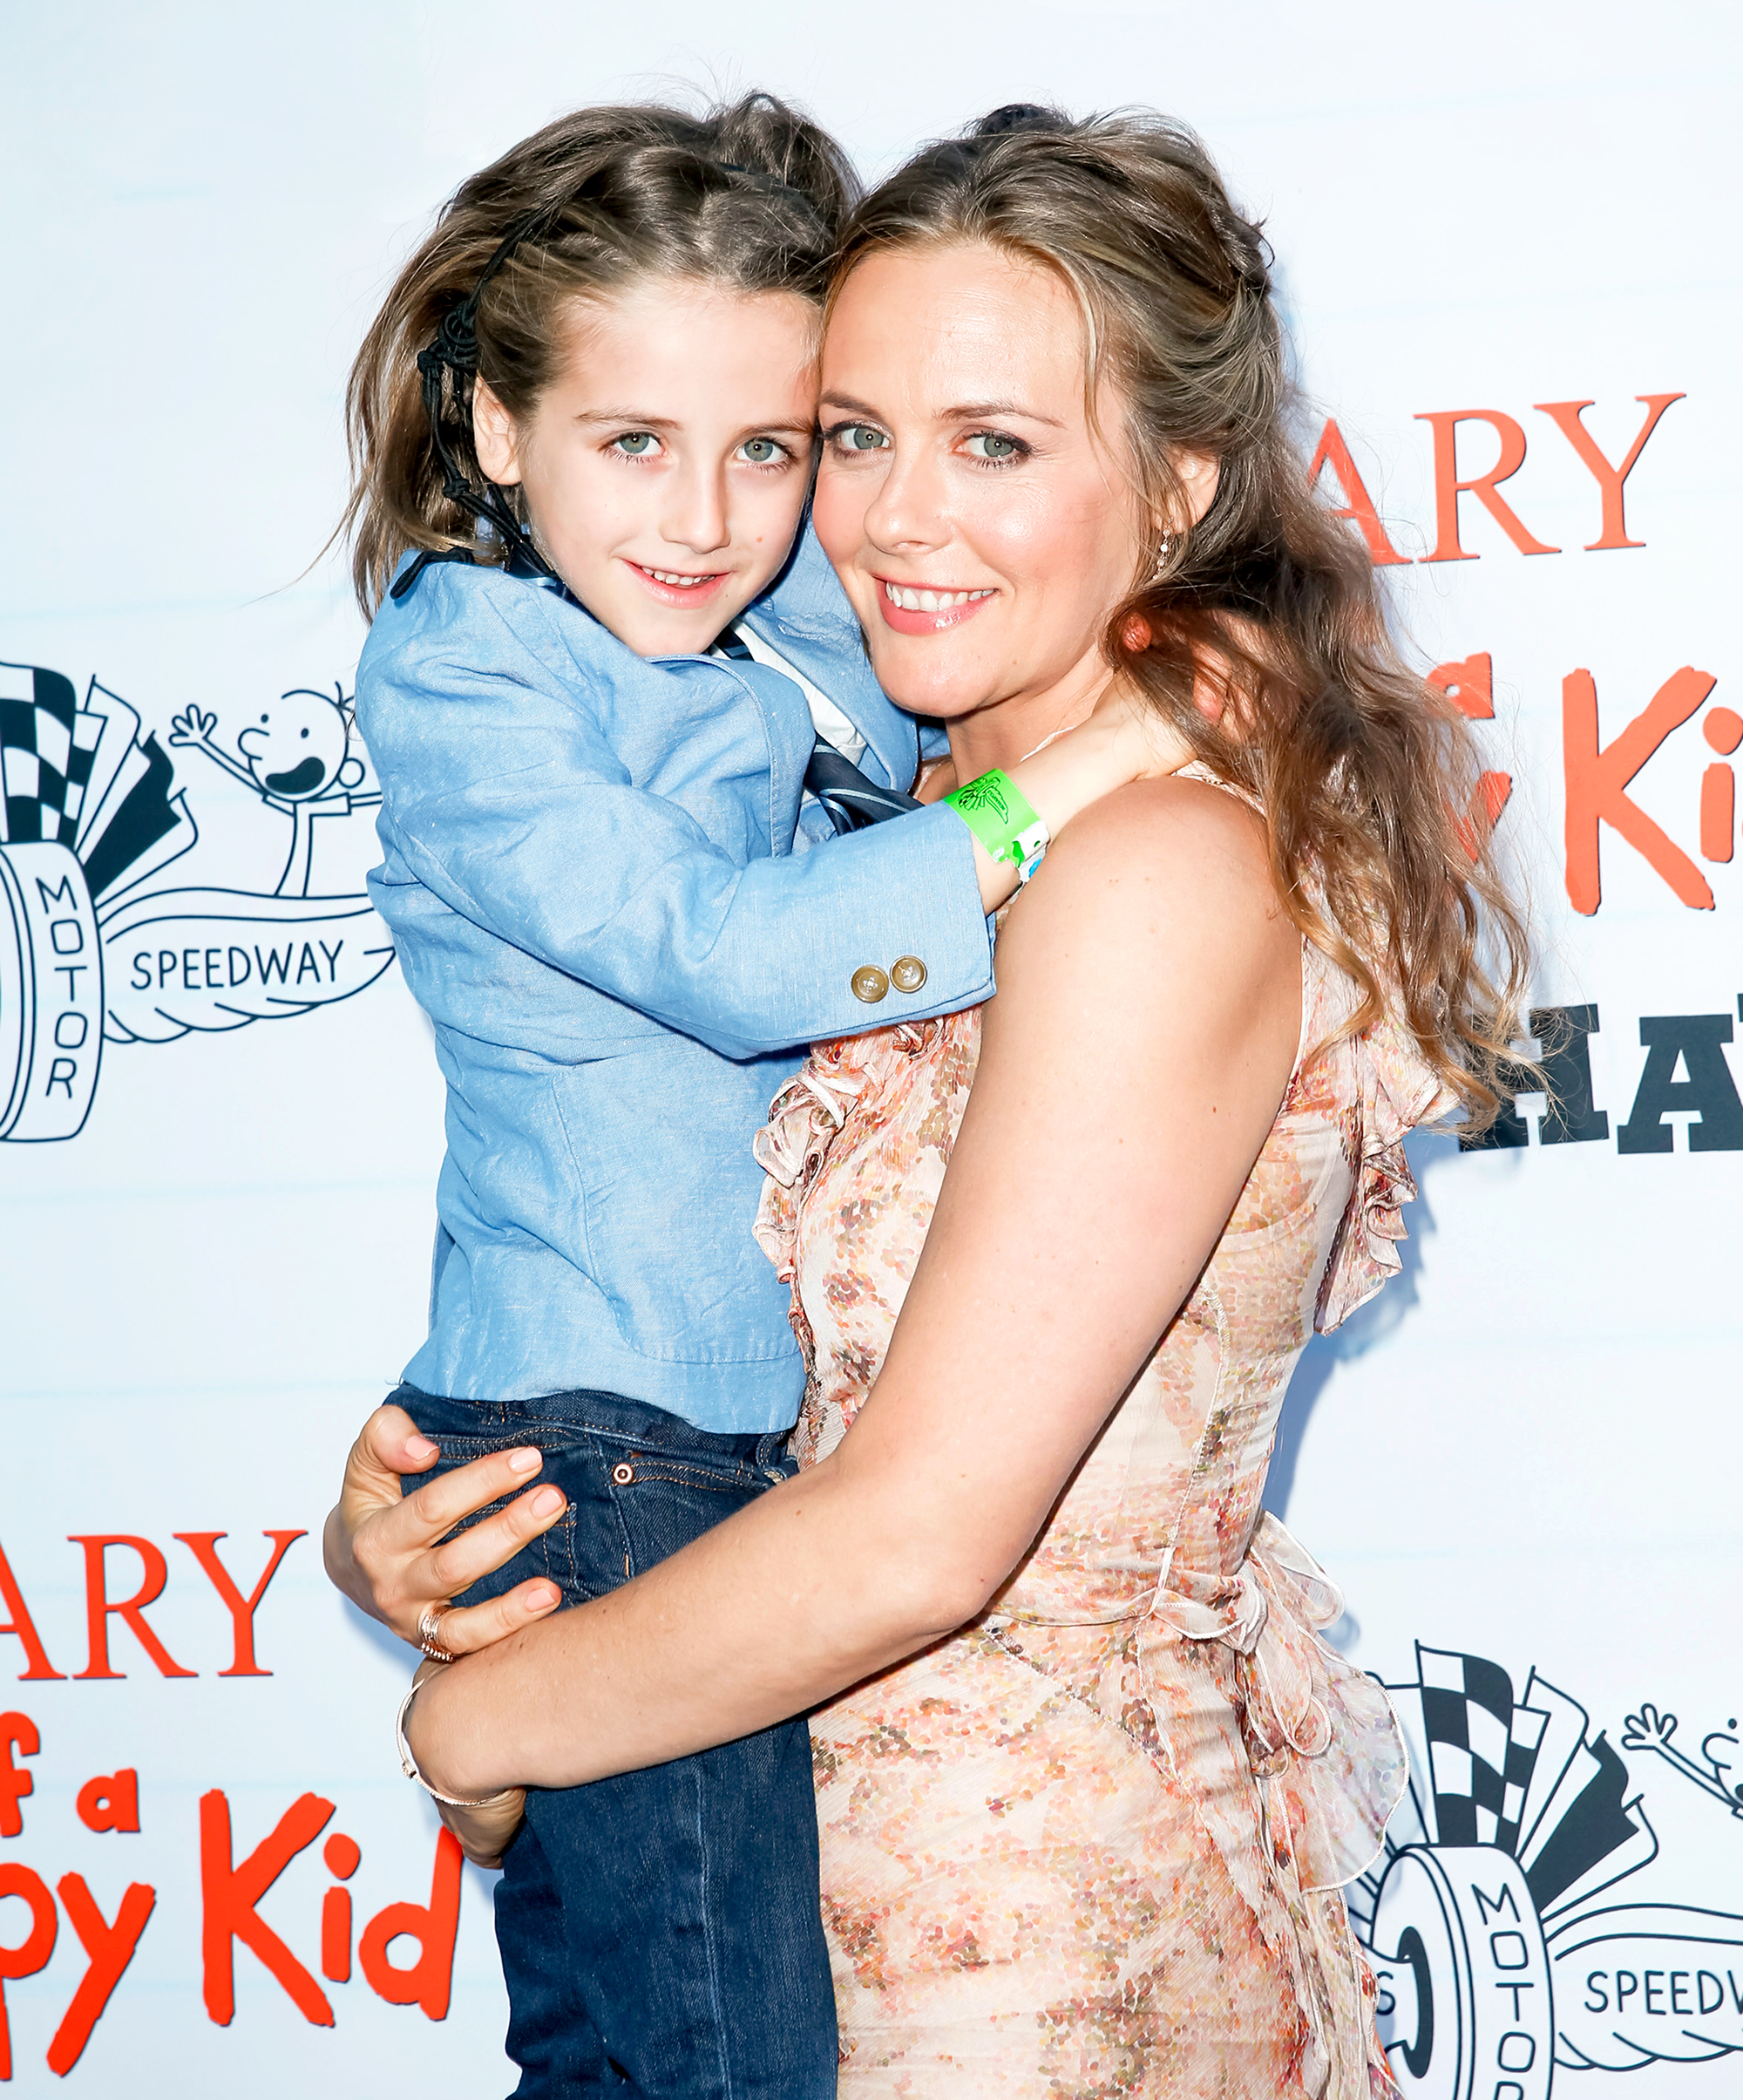 Why Alicia Silverstone's Son Tried to Make Out With Her